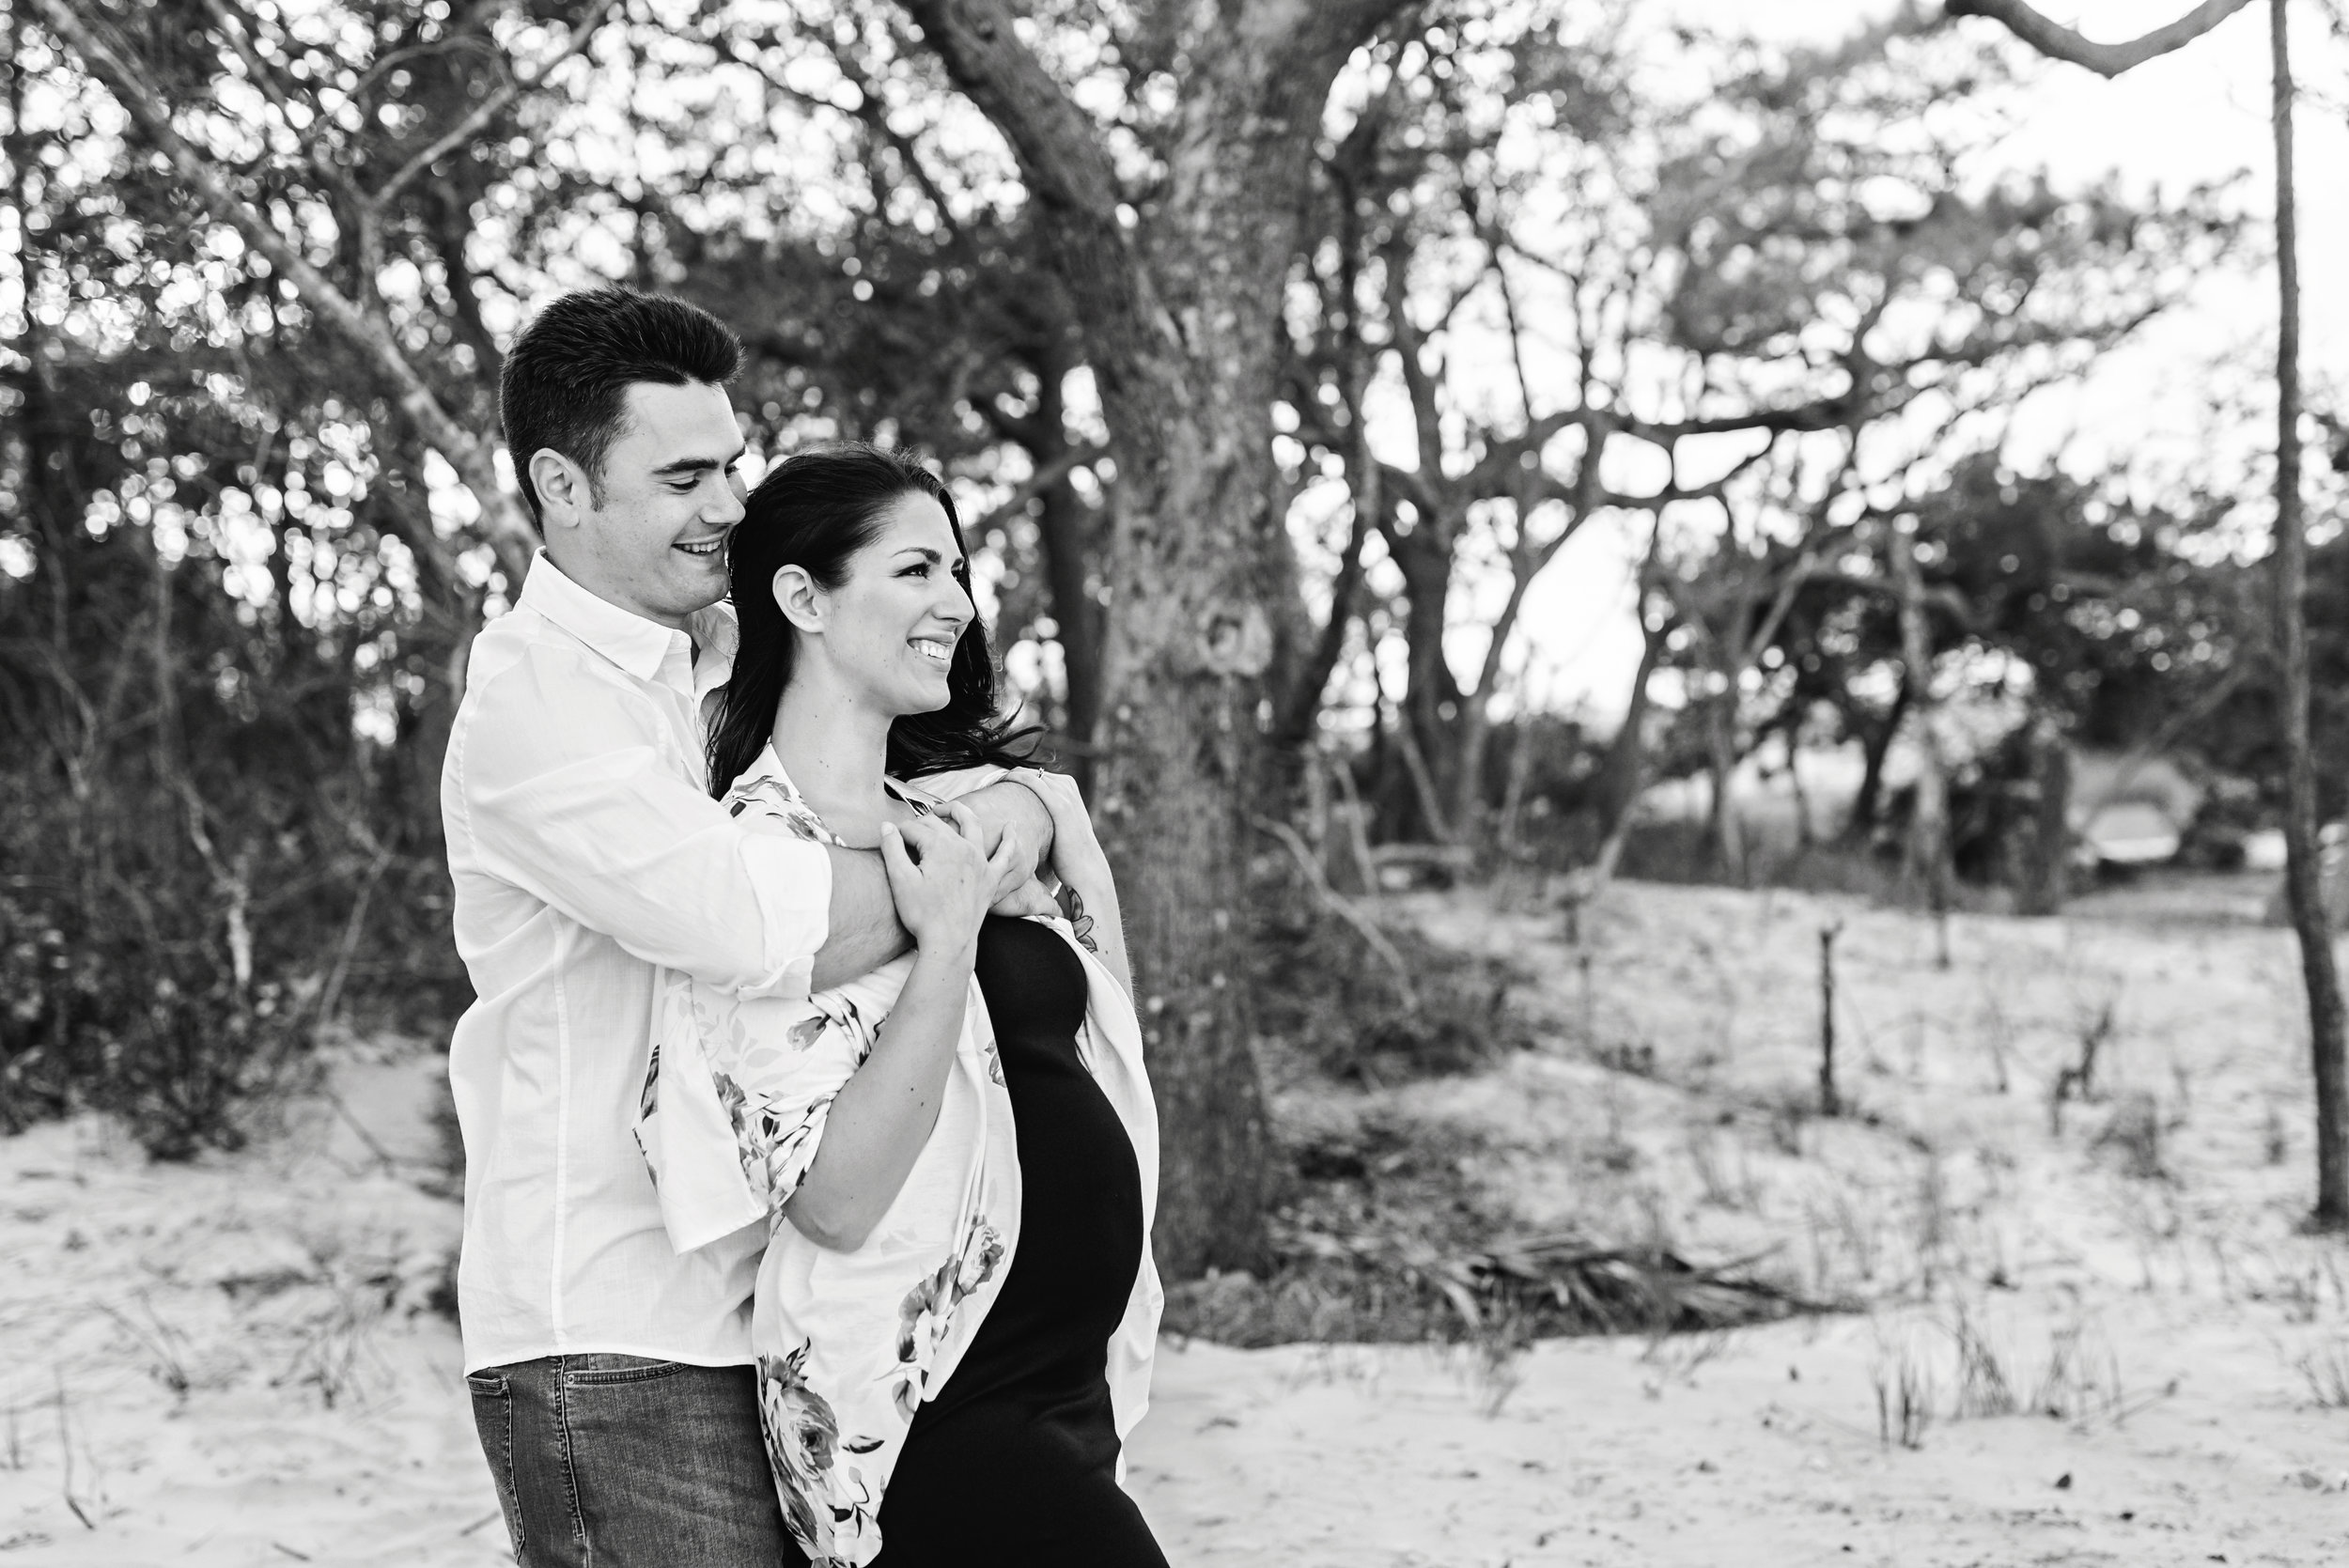 Folly-Beach-Maternity-Photographer-Following-Seas-Photography-1779BW copy.jpg